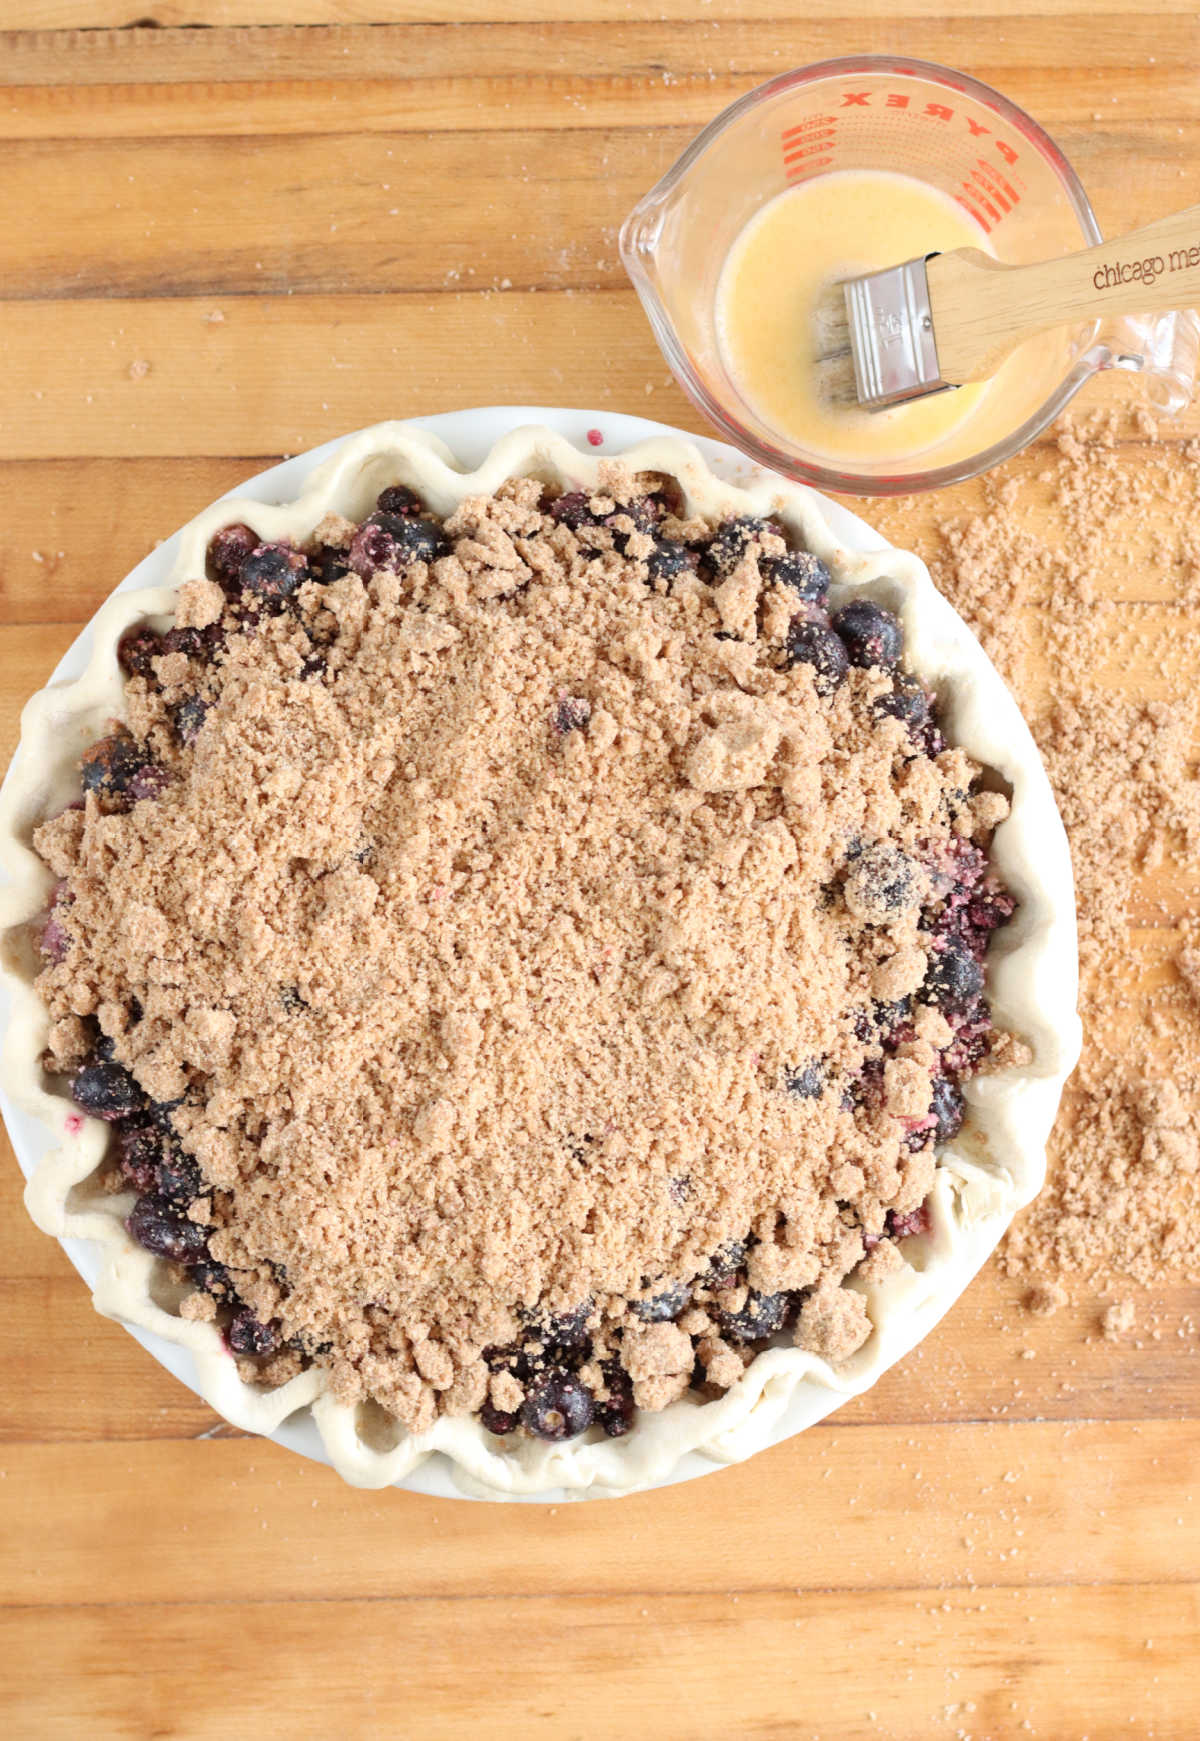 Blueberry pie with crumb topping on wooden cutting board, egg wash and pastry brush in glass measuring cup.